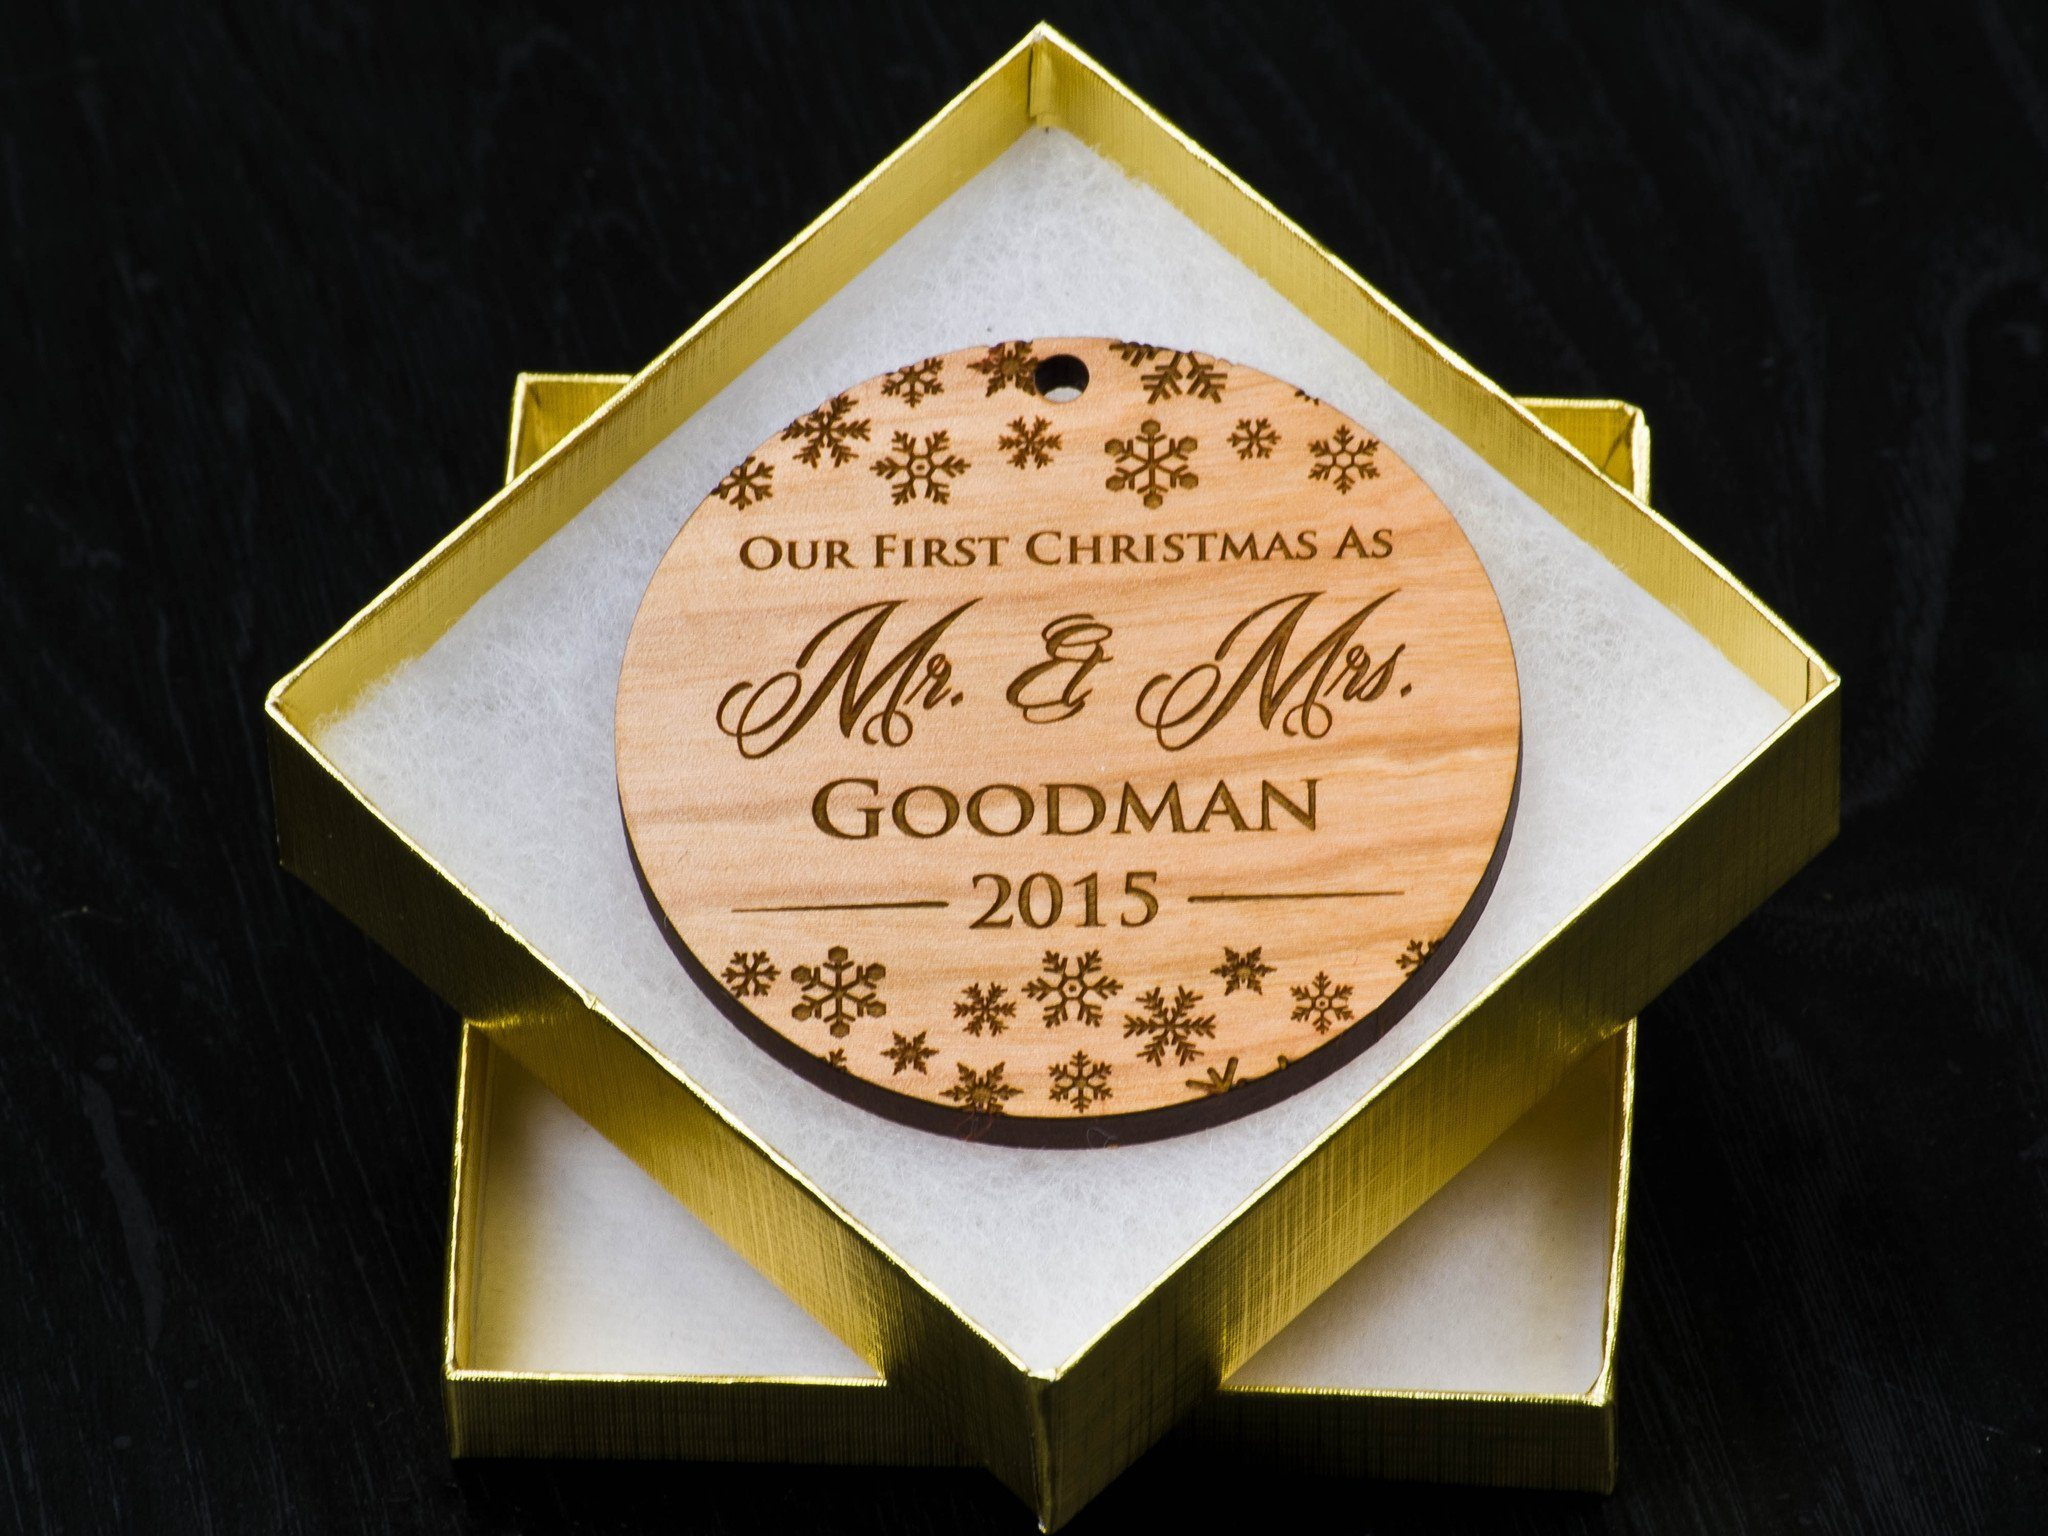 Personalizable ornaments - Our First Christmas Ornament First Married Christmas Personalized Ornament First Christmas Together Ornament Custom Wood Ornament